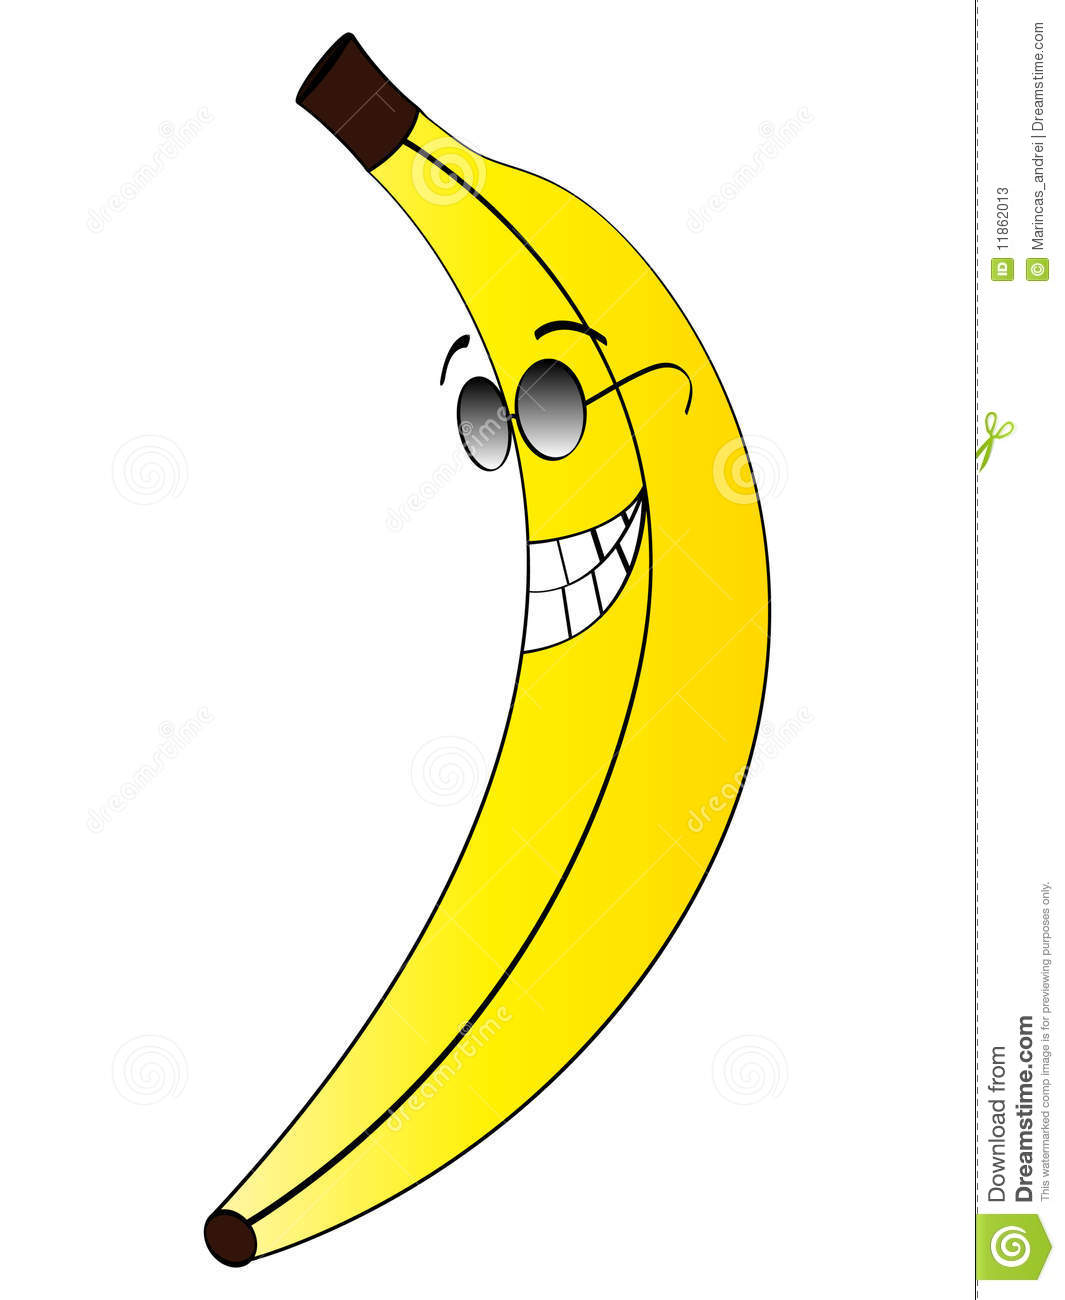 Stock Photos Happy Banana Image11862013 on banana cartoon character